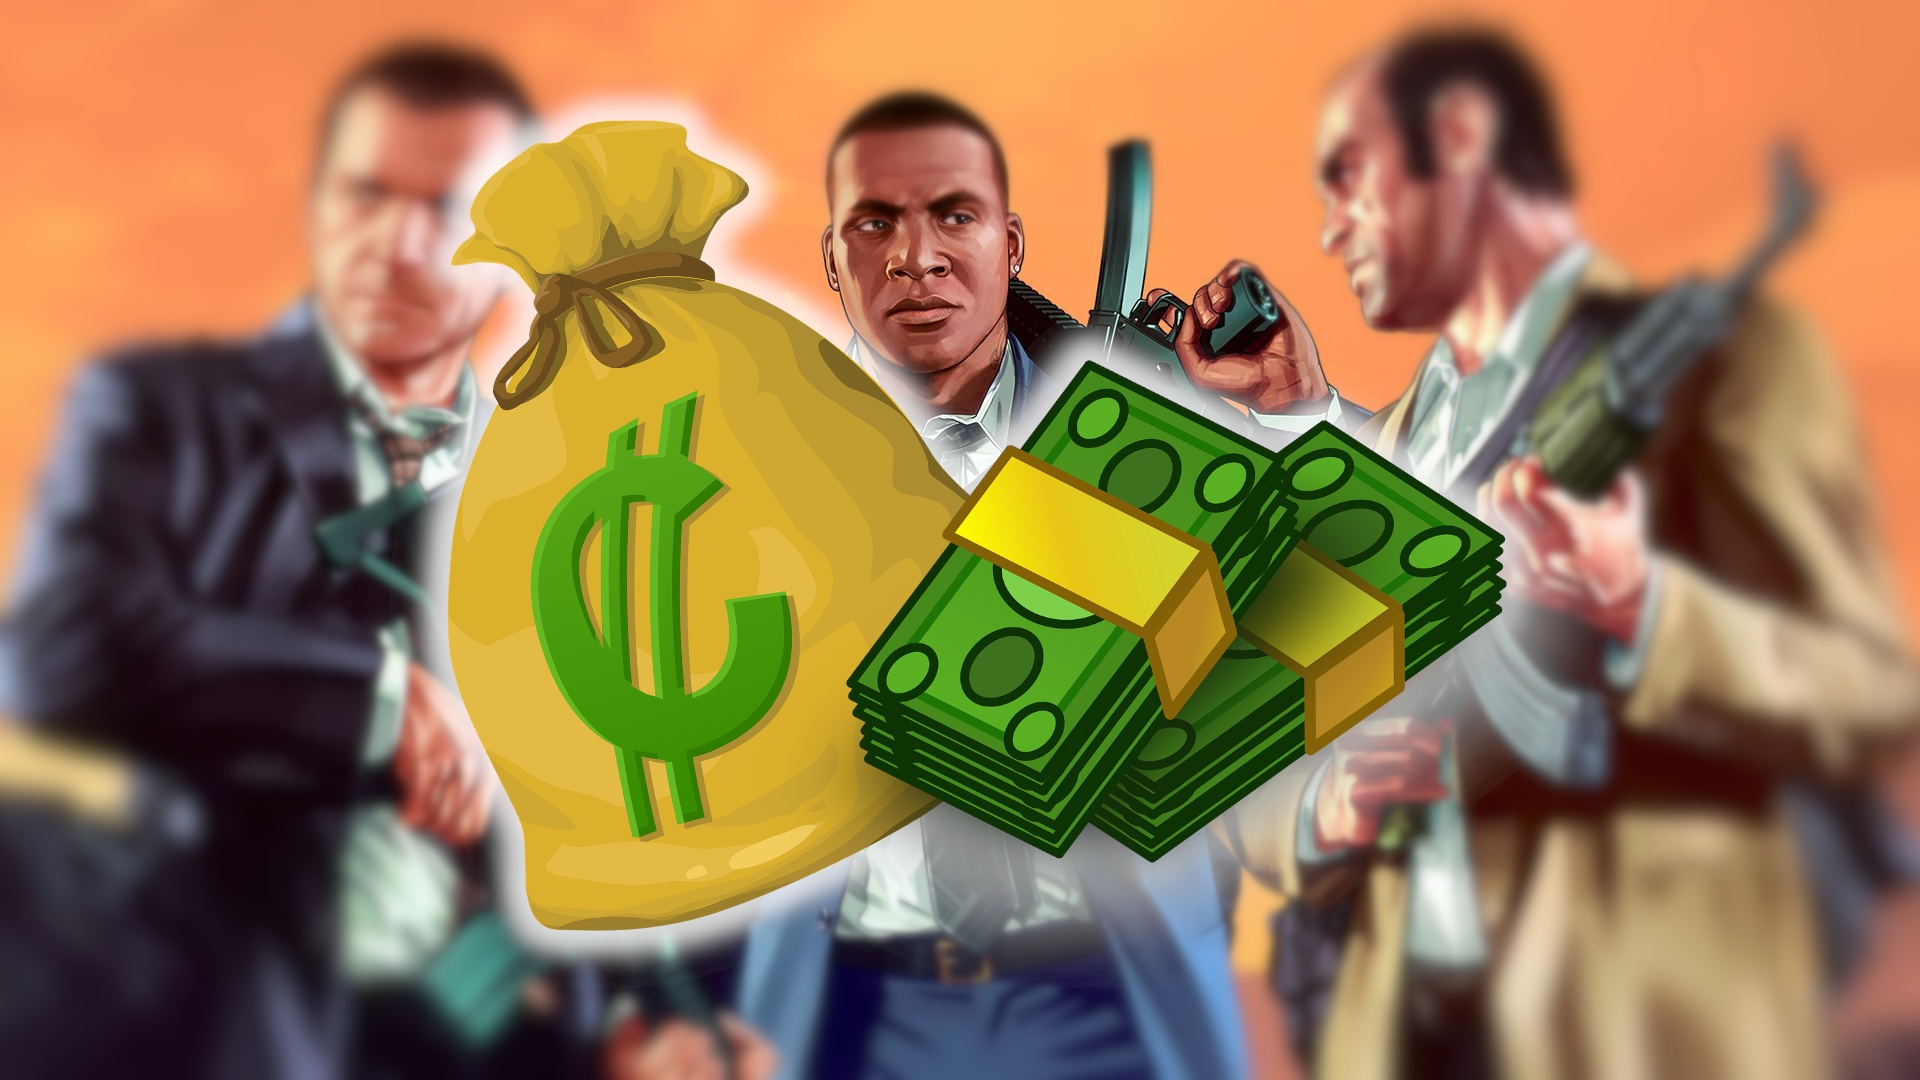 You can now easily make tons of money in GTA Online